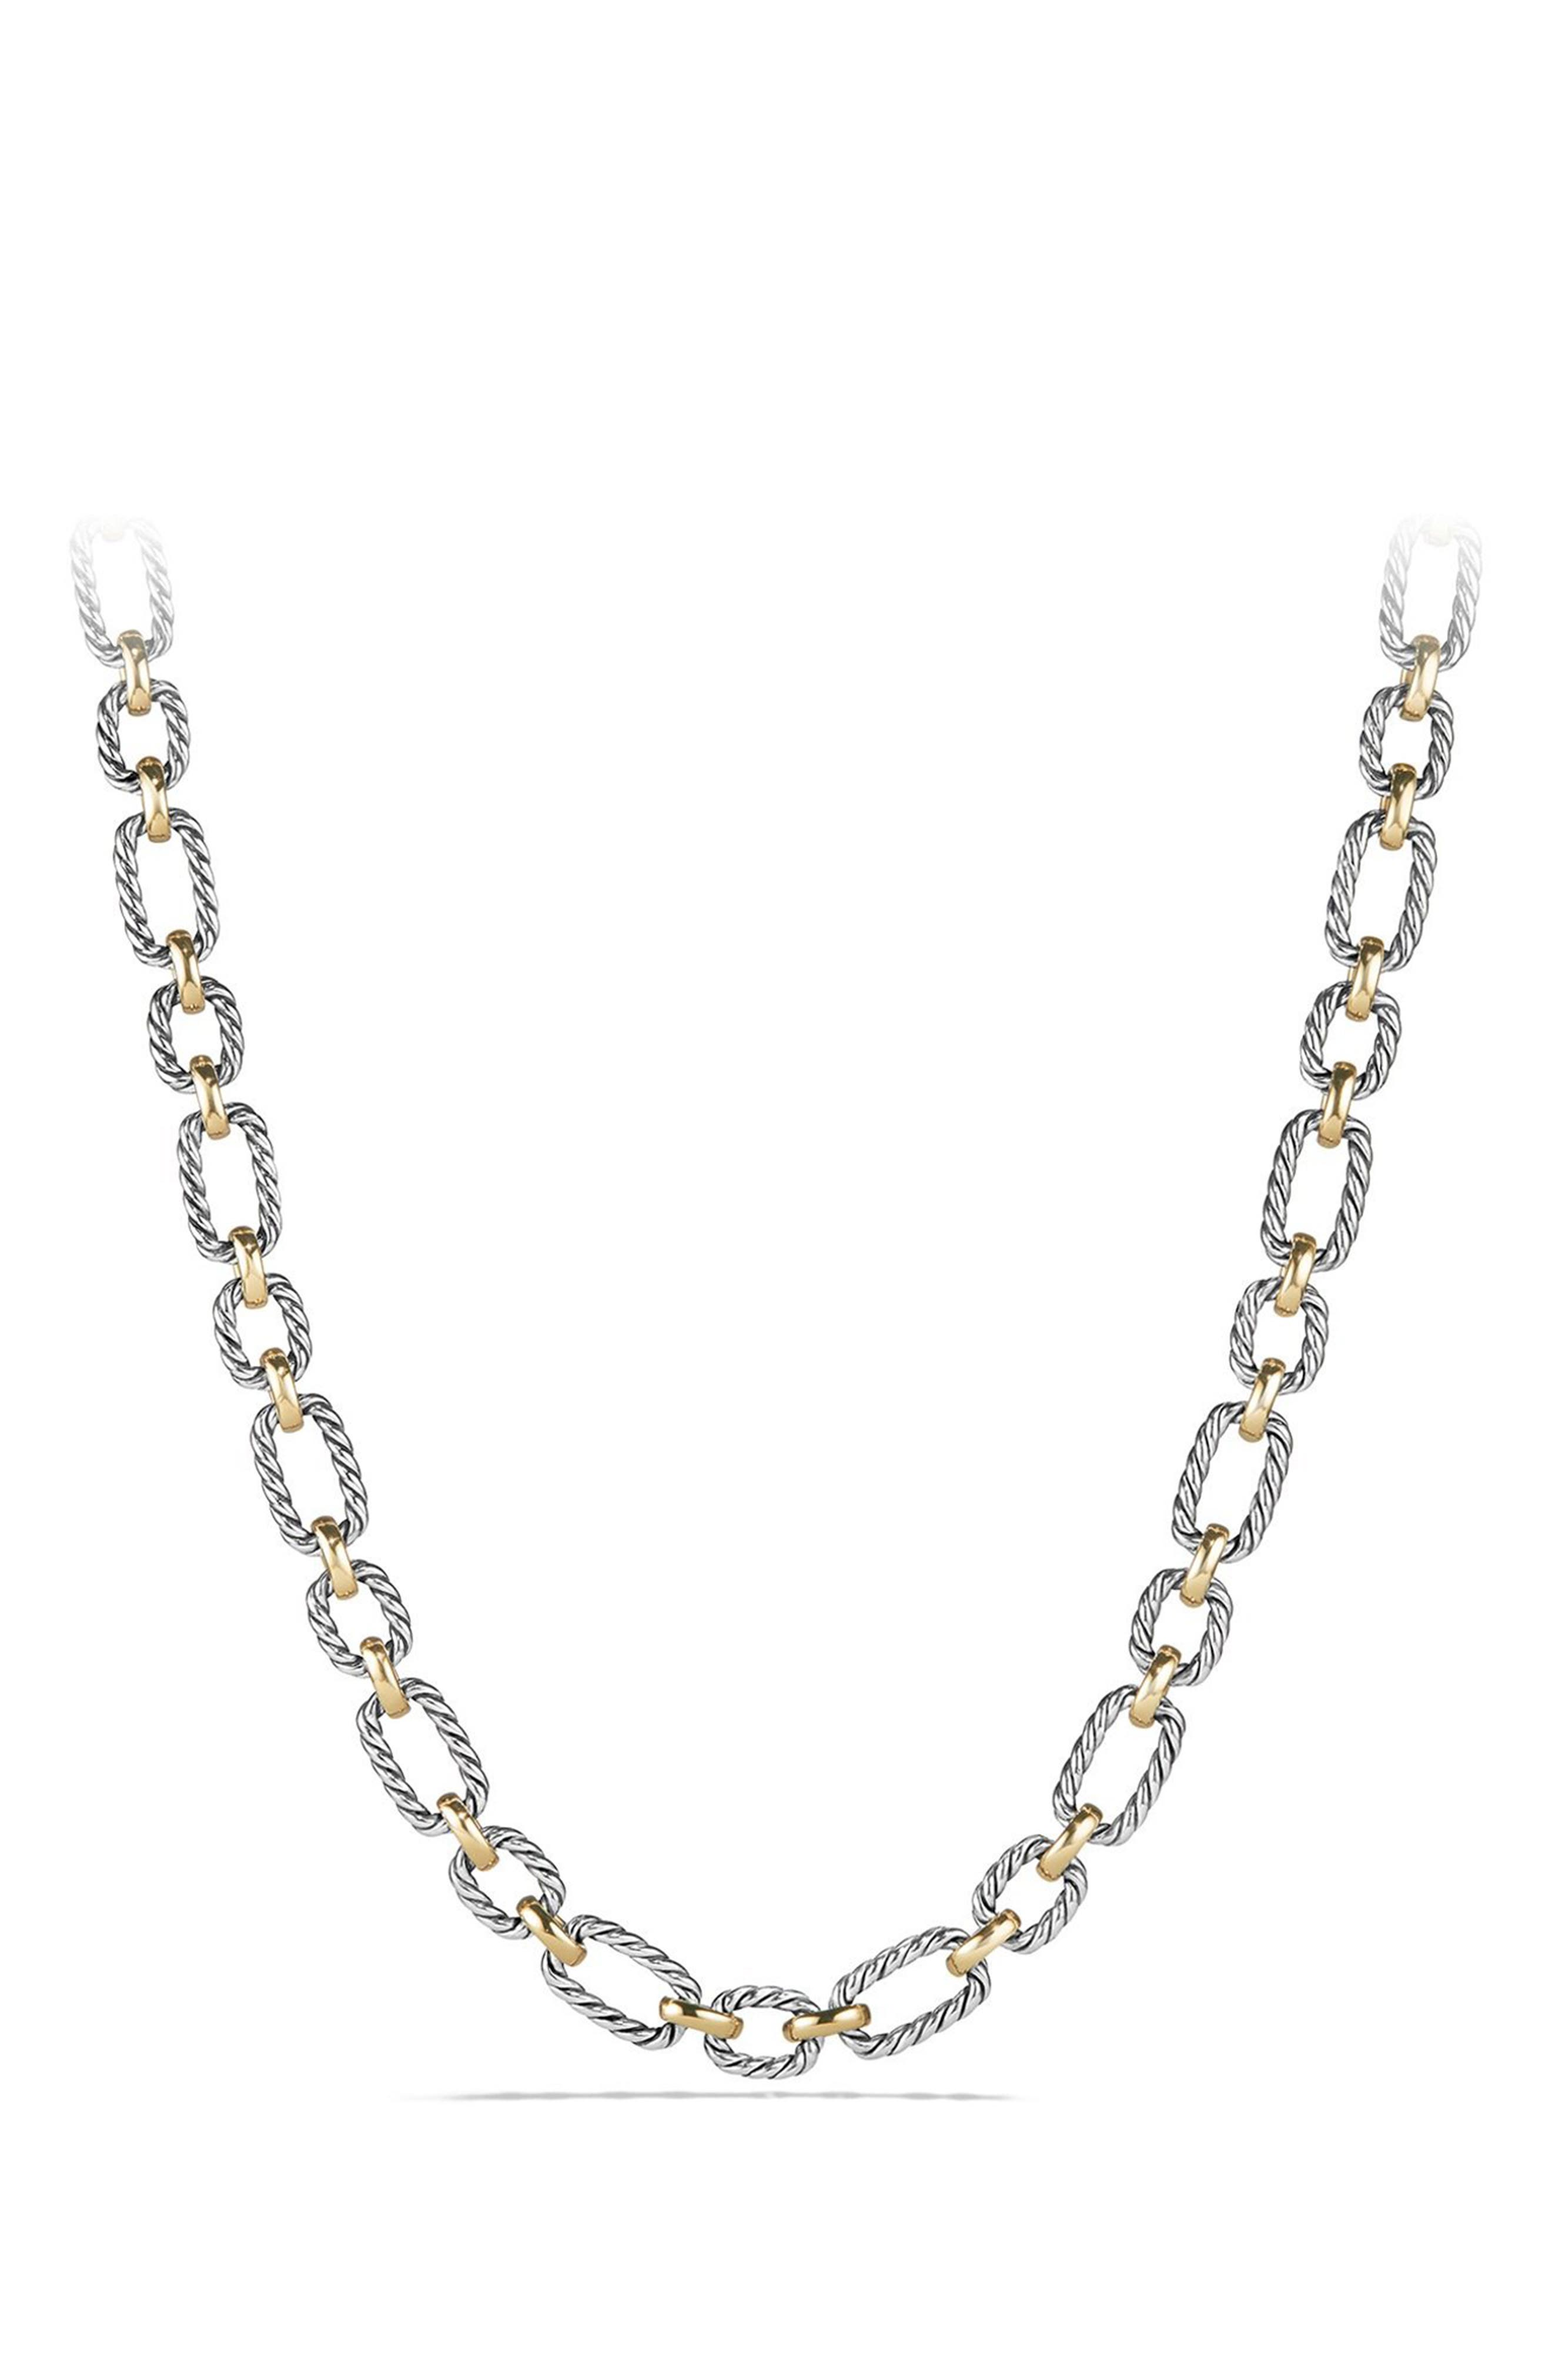 'Chain' Cushion Link Necklace with Sapphires & 18K Gold,                         Main,                         color, Silver/ Gold/ Blue Sapphire